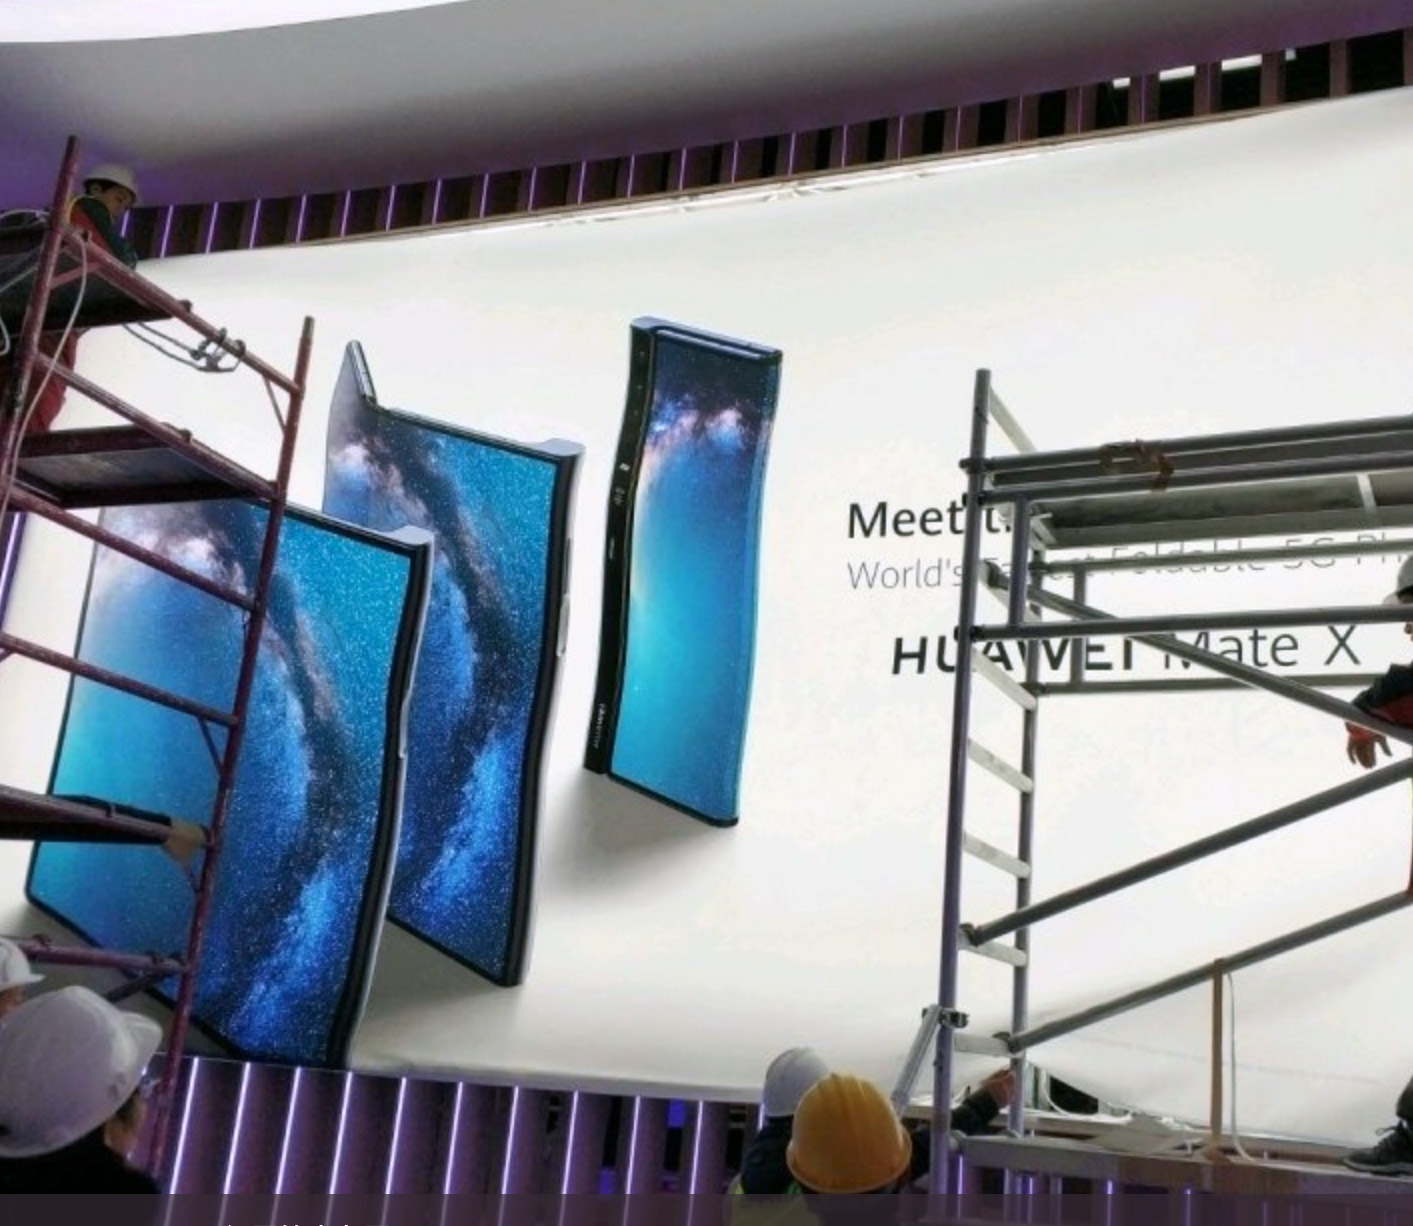 Huawei Mate X 5G Foldable Phone